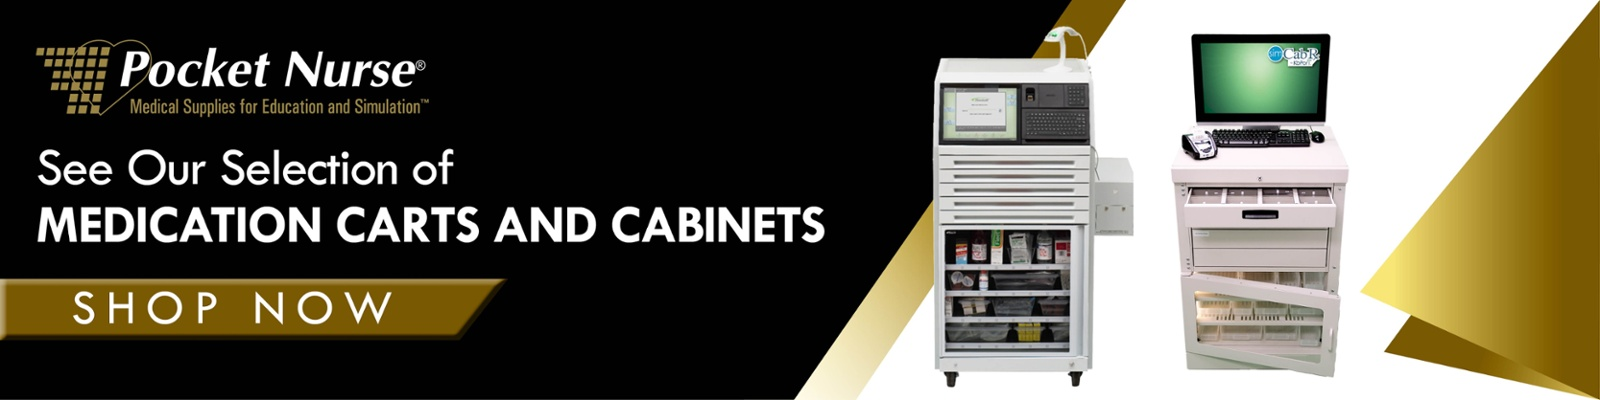 Shop for Medication Carts and Cabinets Now